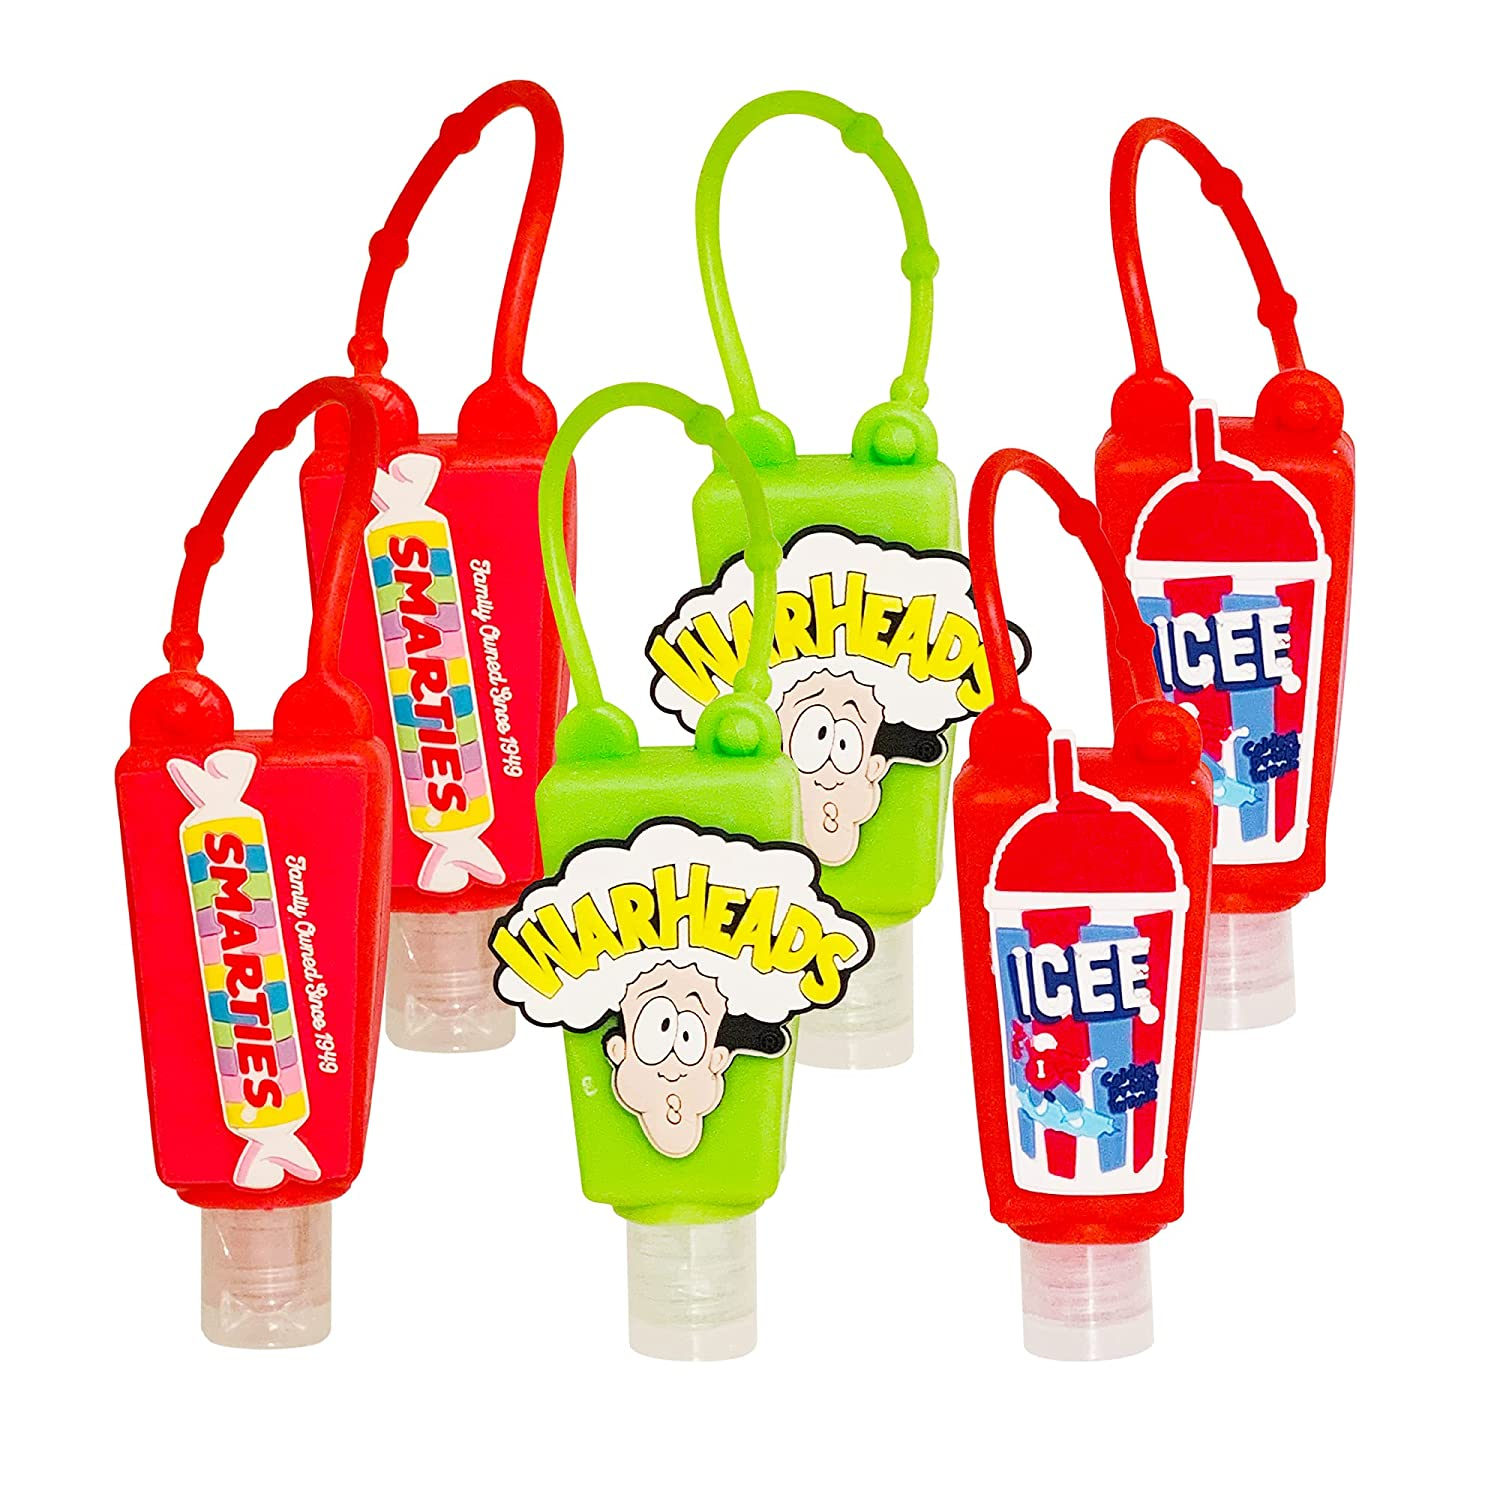 ICEE SMARTIES online shopping WARHEADS Variety Pack of Sanitizer 6 35% OFF Hand